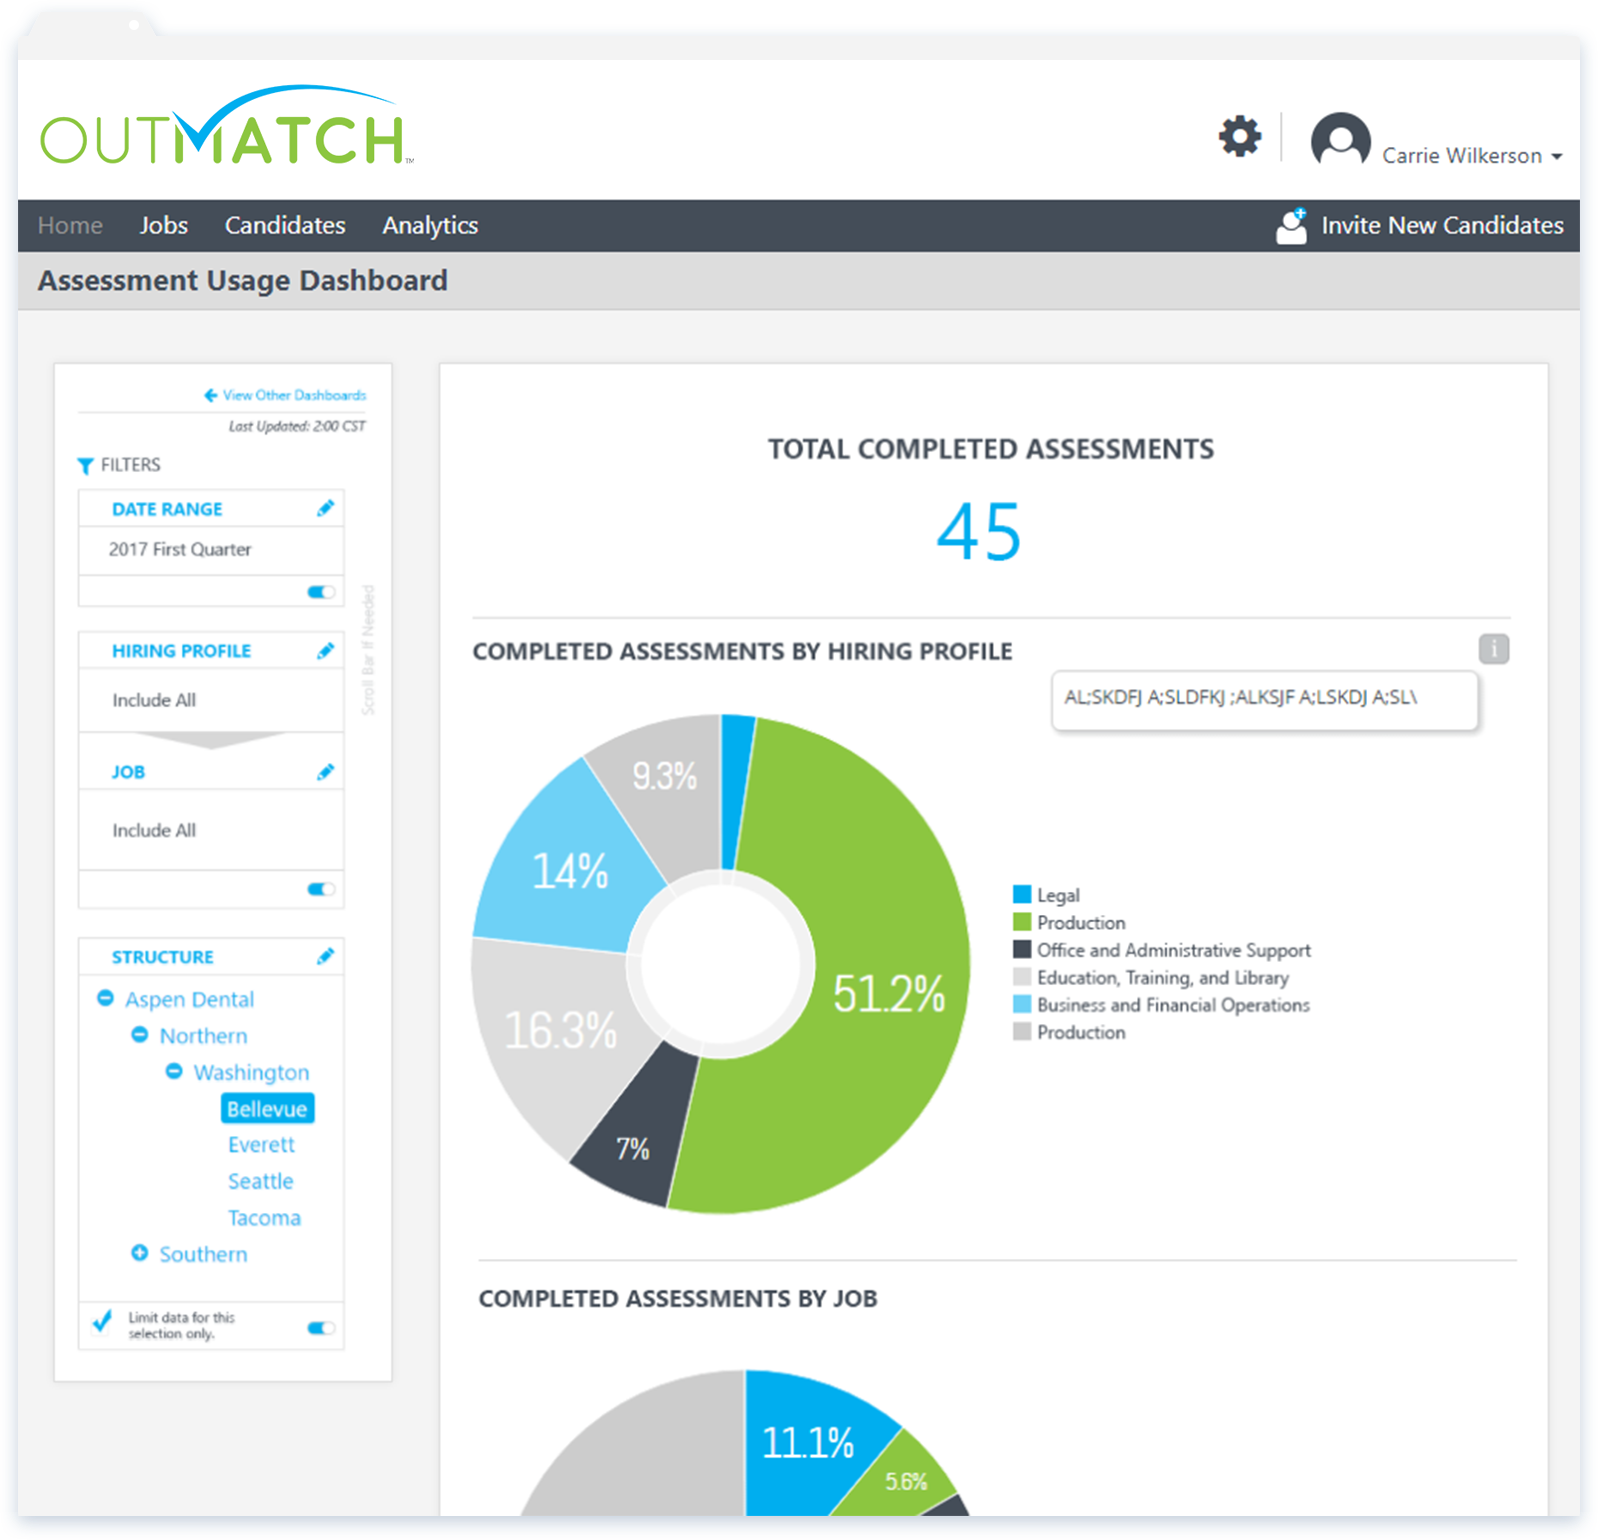 The home screen can host multiple dashboards including that for summarizing assessment usage, with various filter controls available to configure the data applied